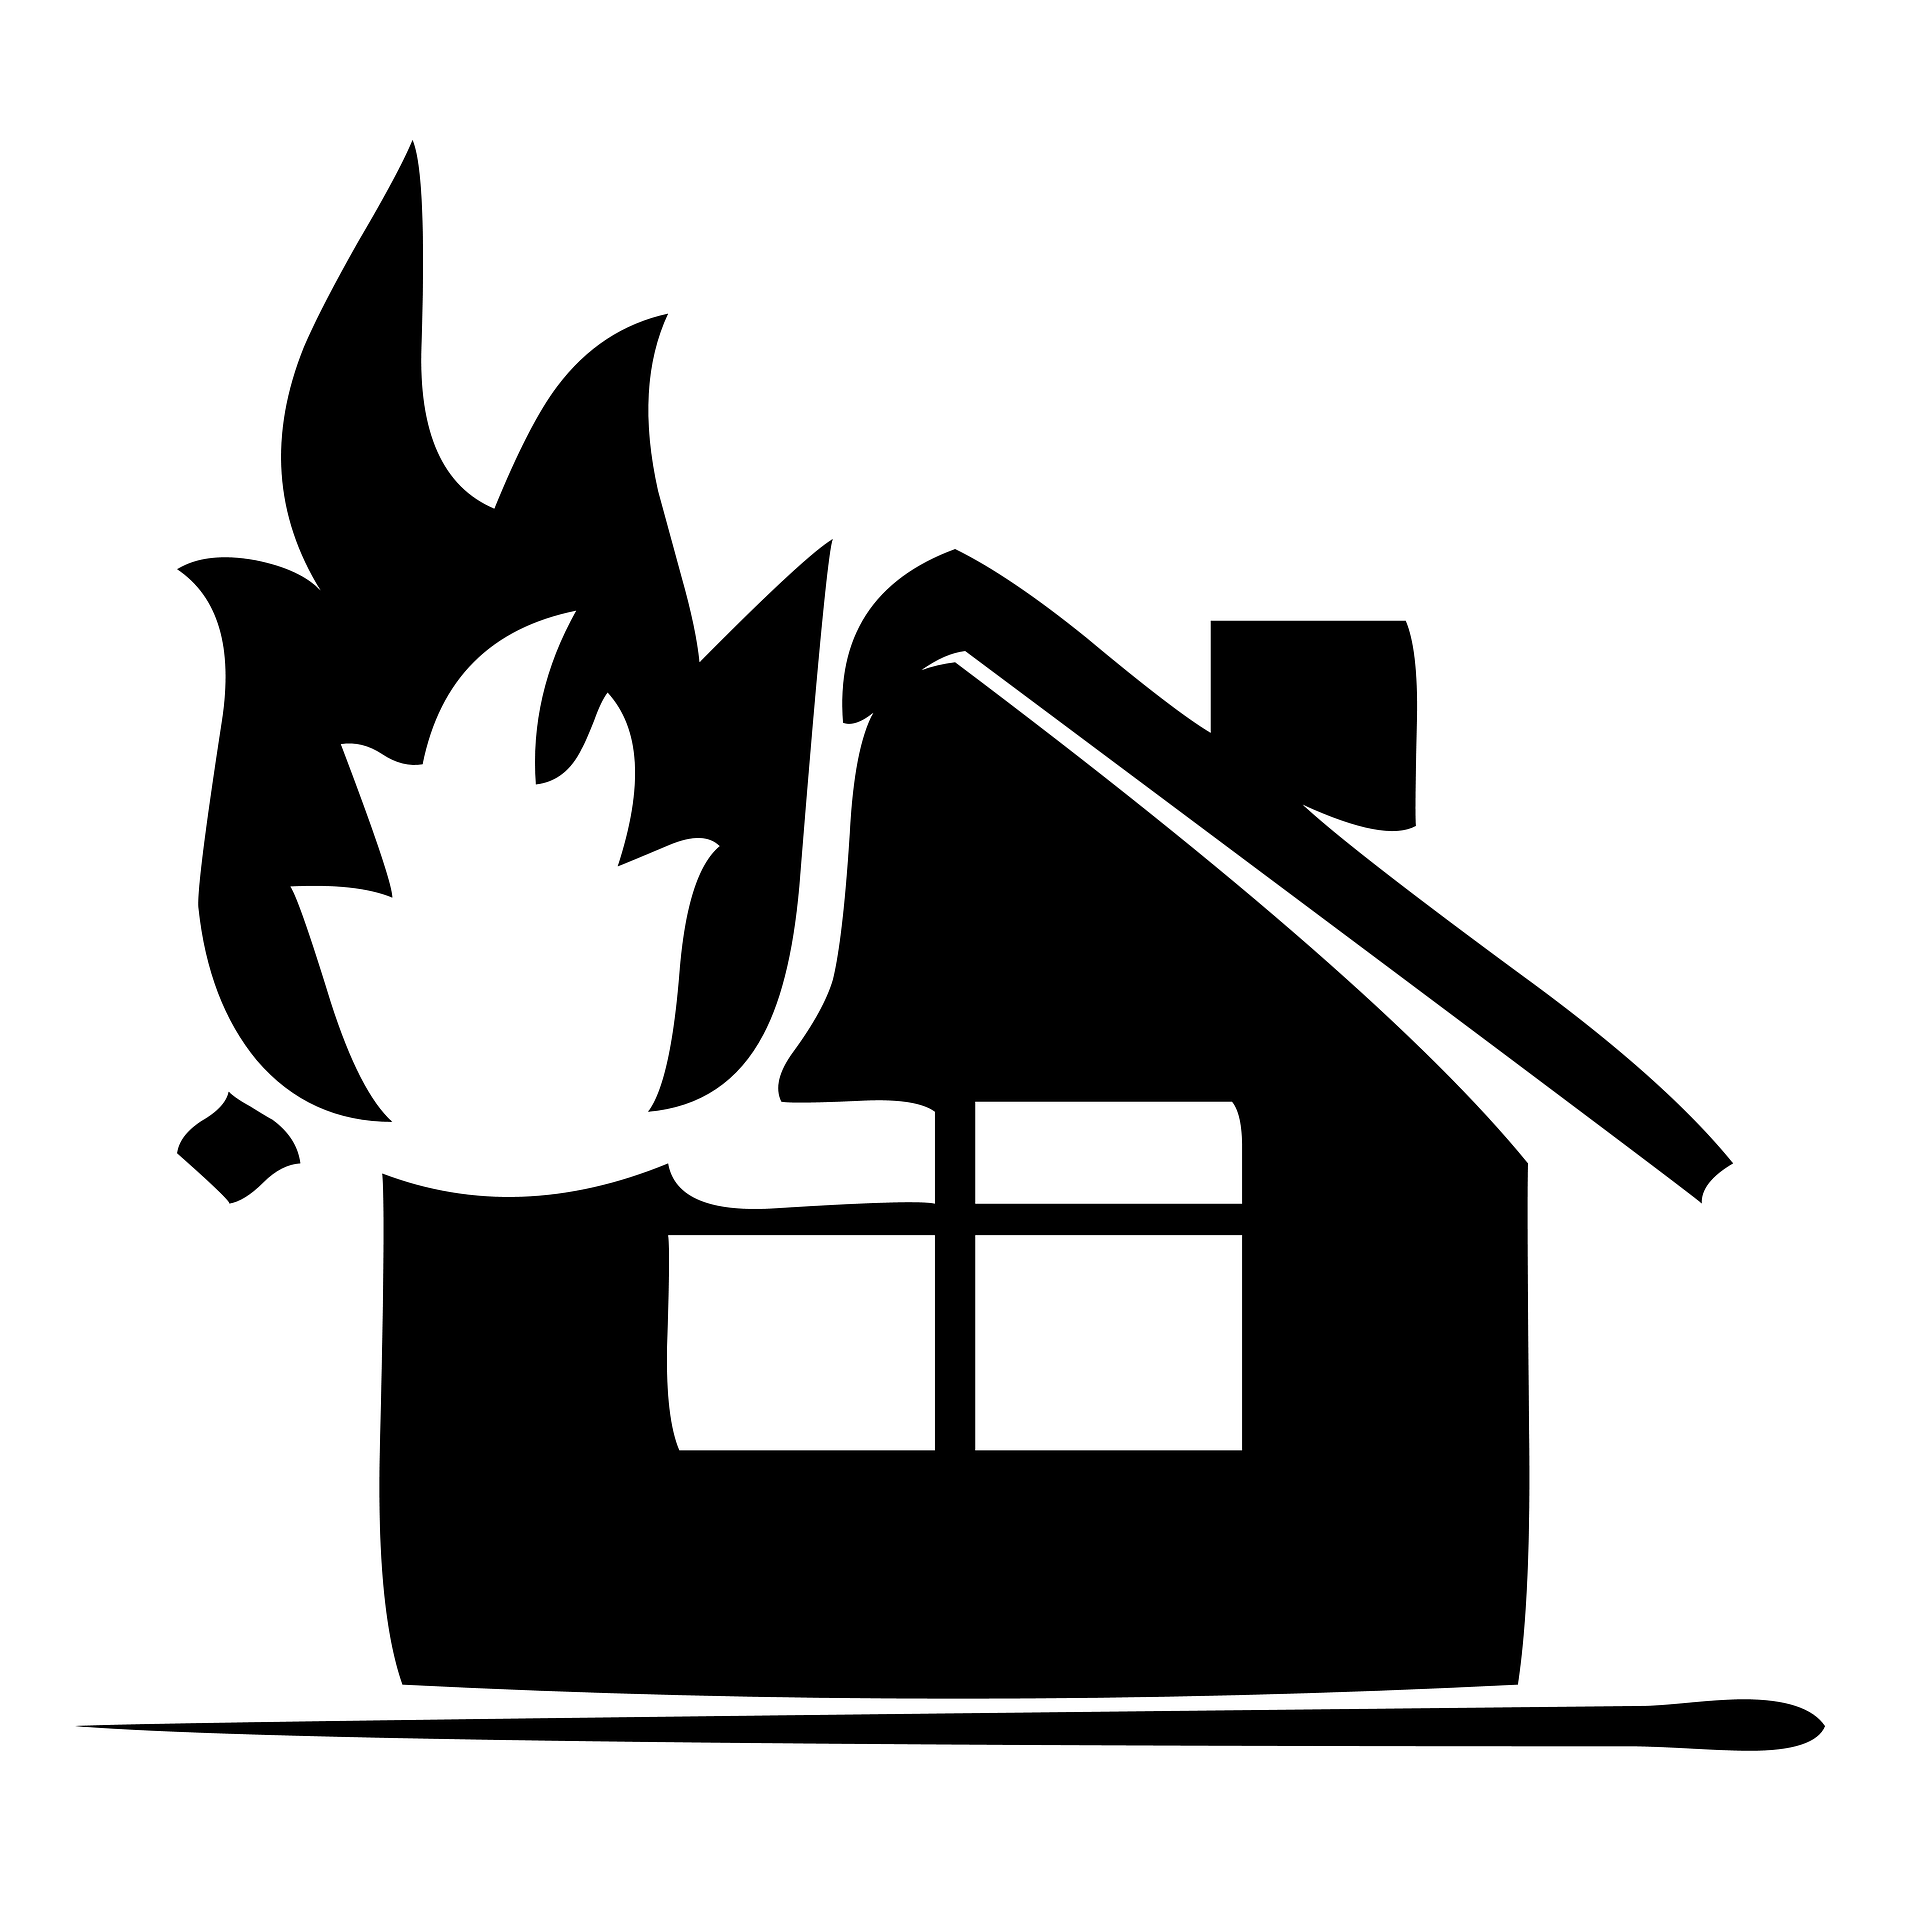 coloring house on fire clipart black and white haunted house clip art clipart best coloring and black white on clipart fire house